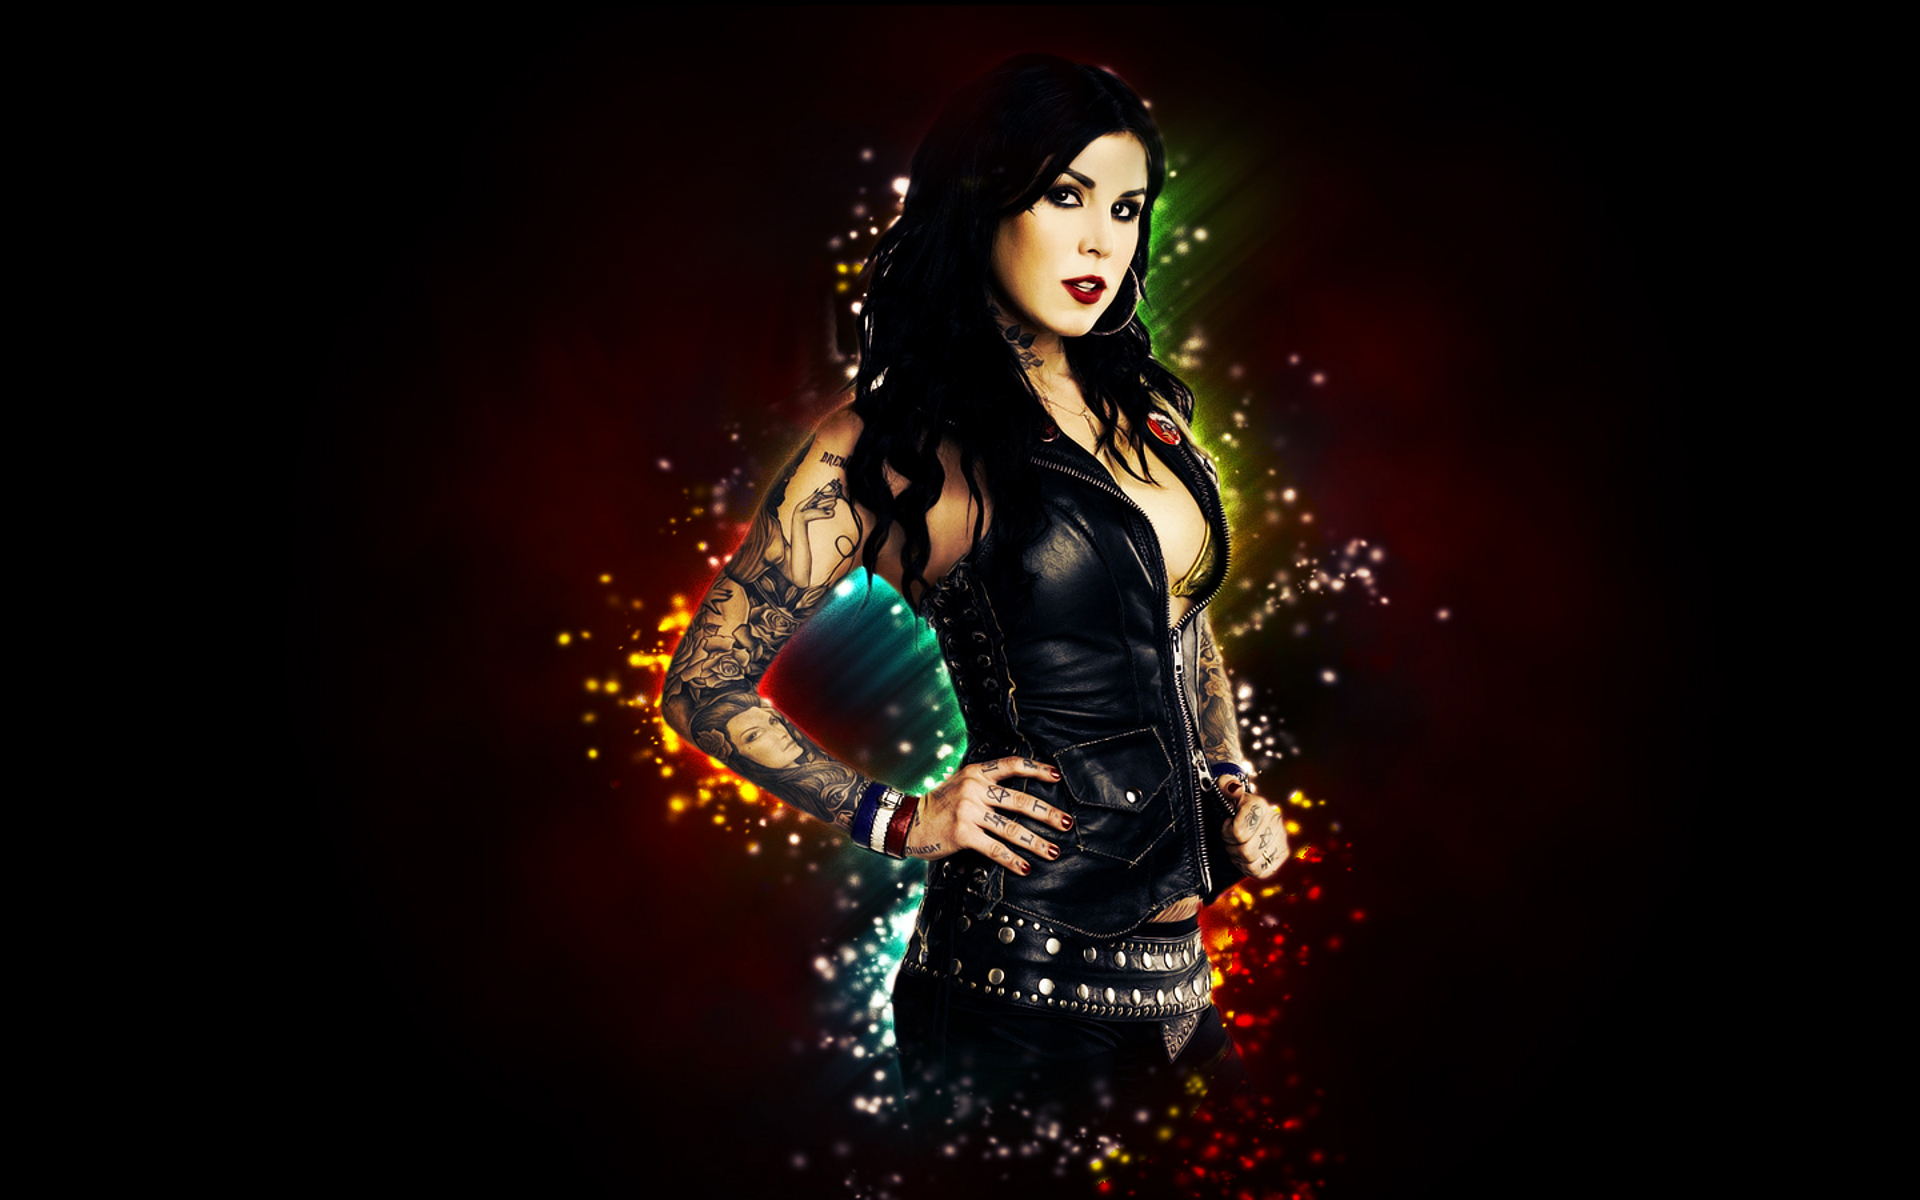 Kat Von D Full Hd Wallpaper And Background Image  1920X1200  Id157924-3991